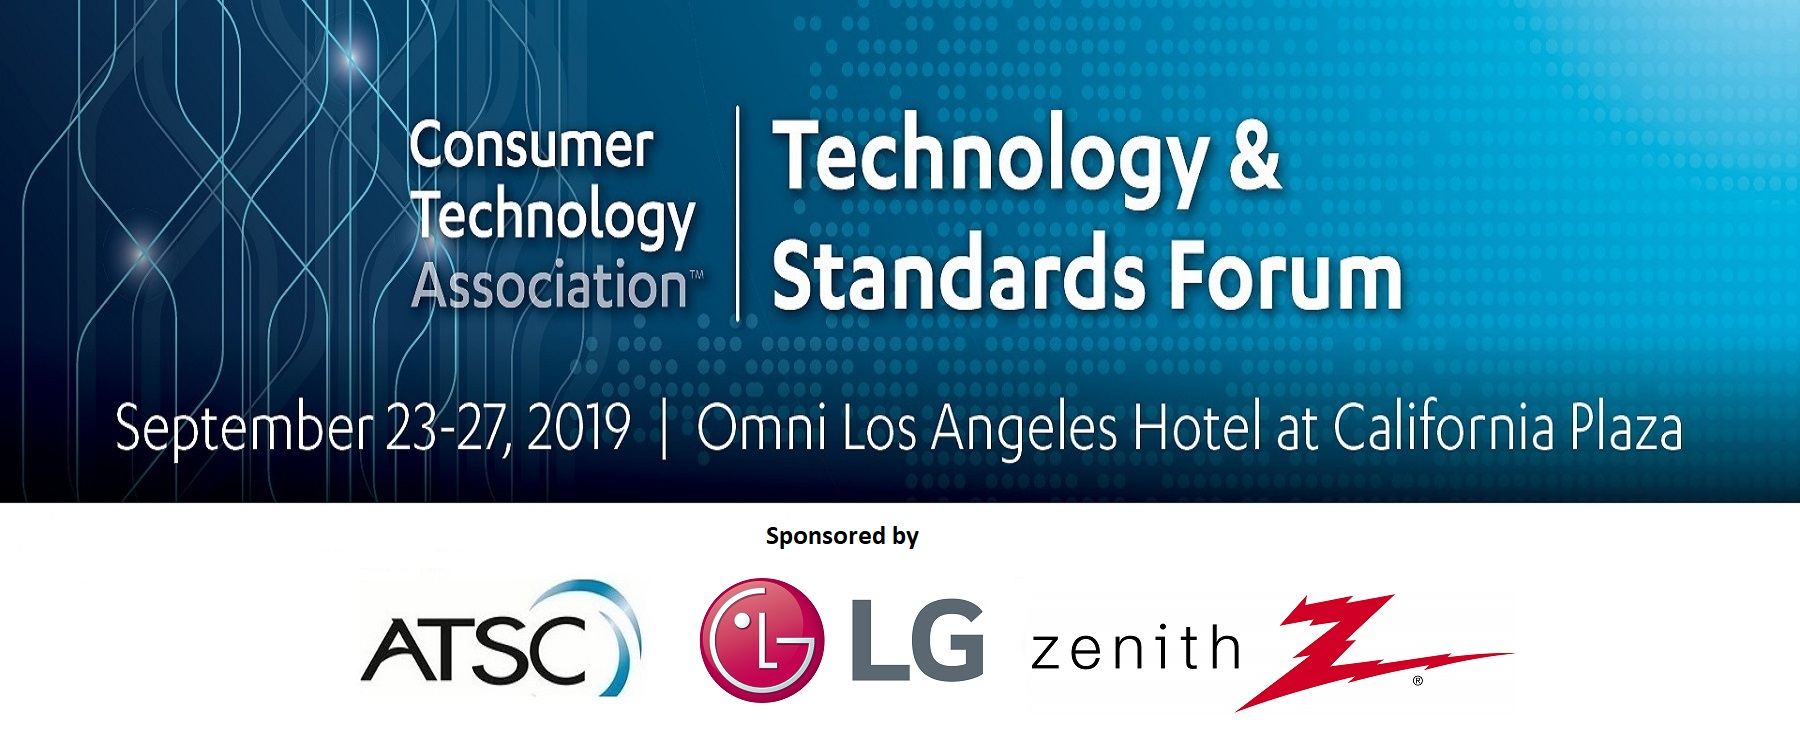 Technology & Standards Forum